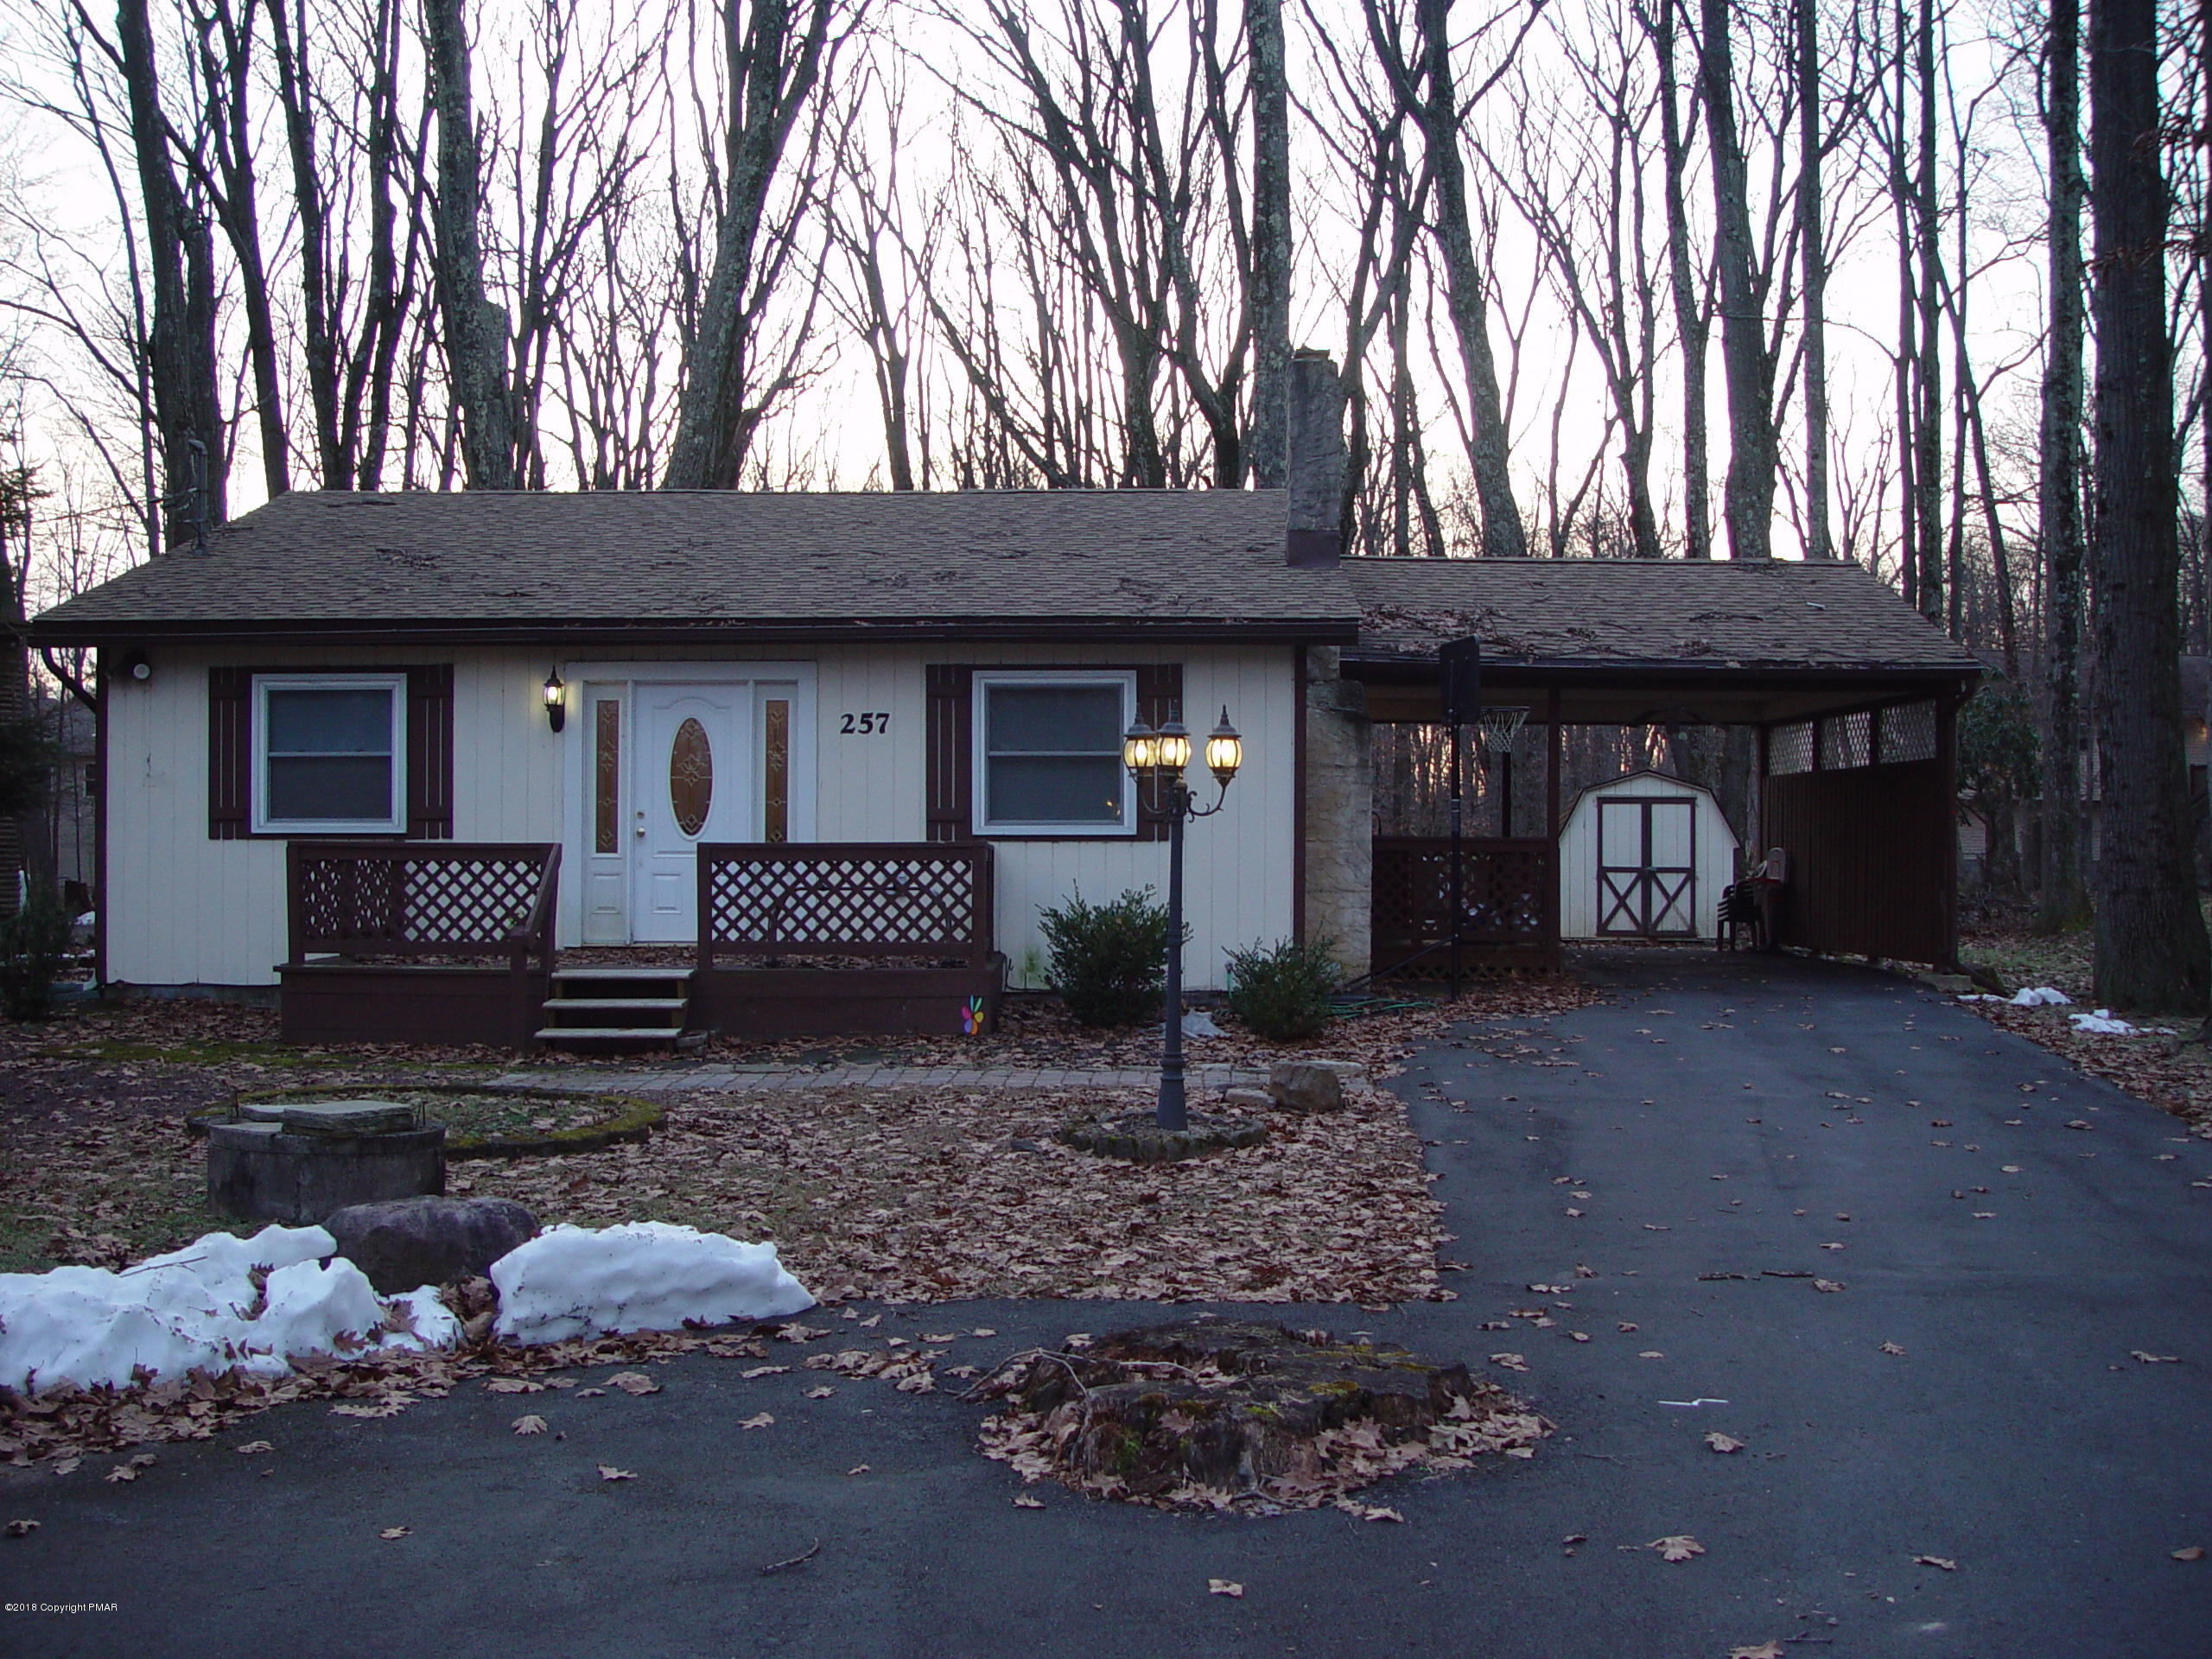 257 Stillwater Dr, Pocono Summit, PA 18346